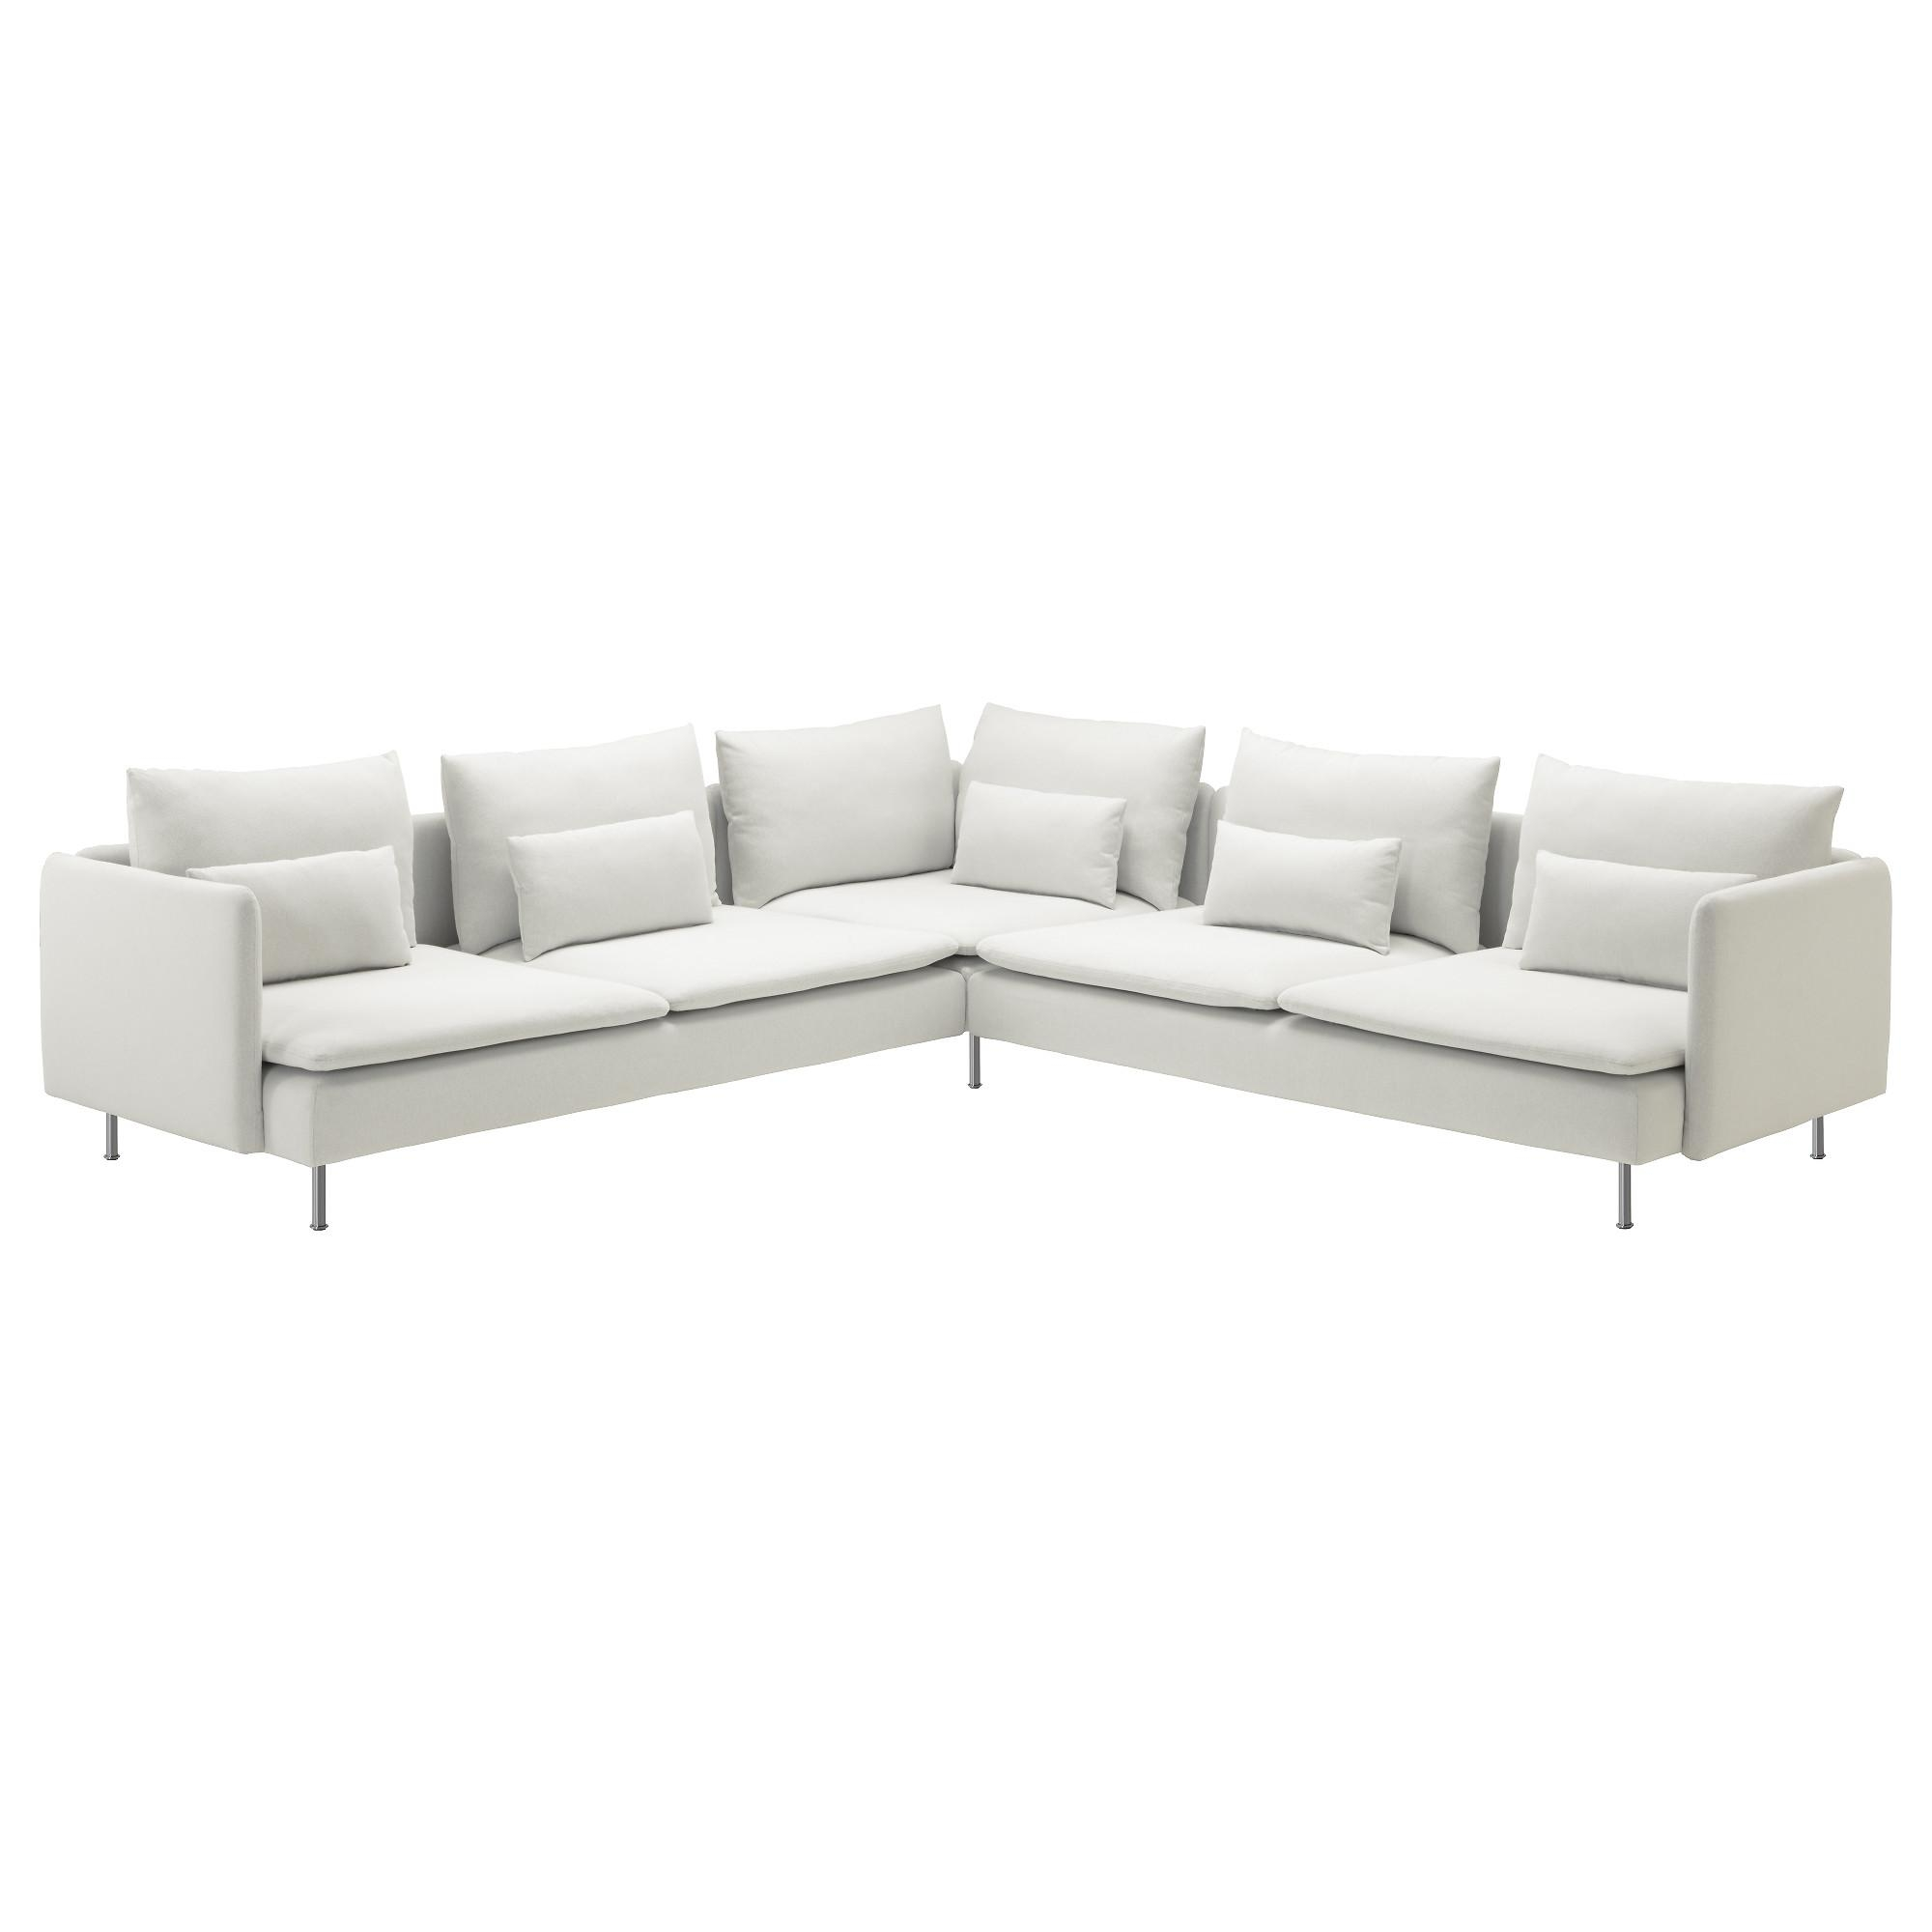 Söderhamn Series – Ikea With Regard To 2 Seat Sectional Sofas (View 15 of 15)